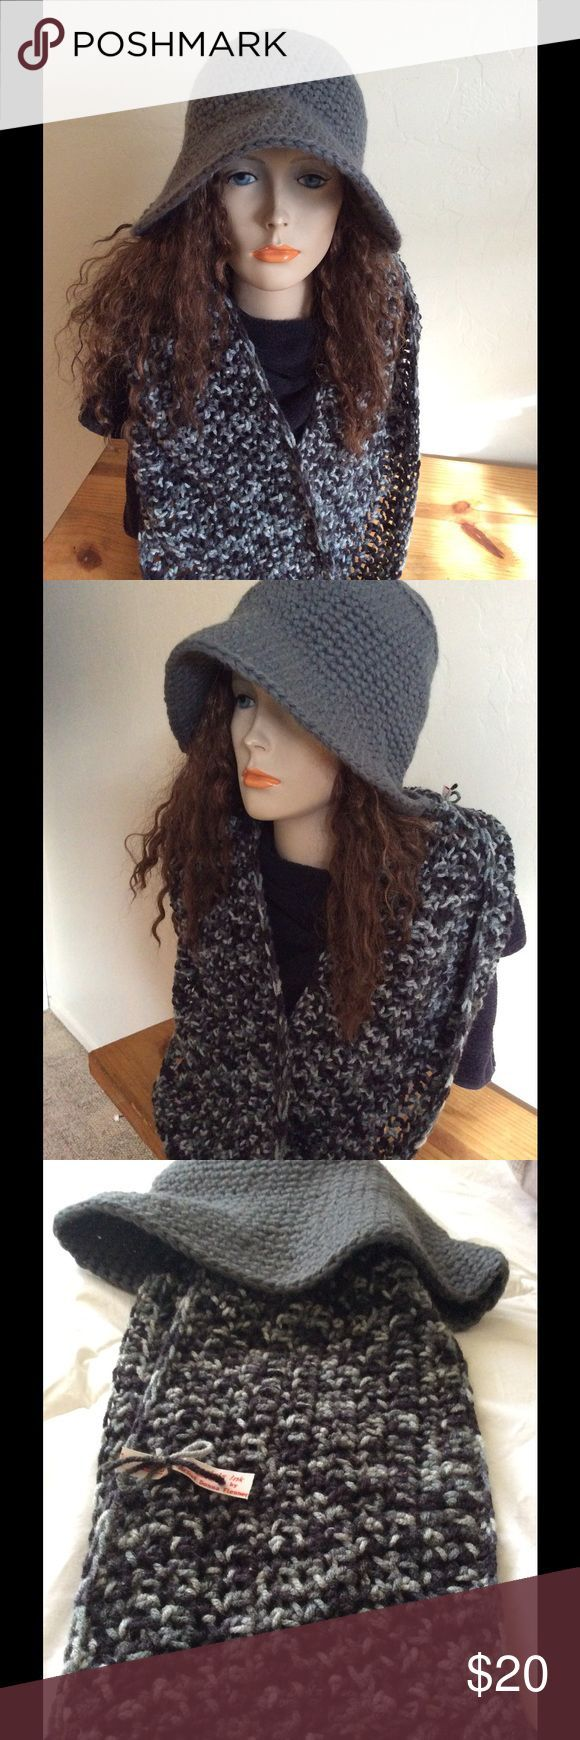 #Bucket #Crochet #hat #Hook #Hot #Infinity #Rainy Day Outfit with hat #scarf #Set Bucket Hat and Infinity Scarf Hot off the crochet hook this hat and scarf set is...        Bucket Hat and Infinity Scarf Hot off the crochet hook this hat and scarf set is pretty impressive. It is part of my new line for 2017. Everyone needs a warm bucket hat and scarf for those frigid windy, rainy, icy and snowy days. Here it is in many shades of grey. Accessories Hats #rainydayoutfitforwork